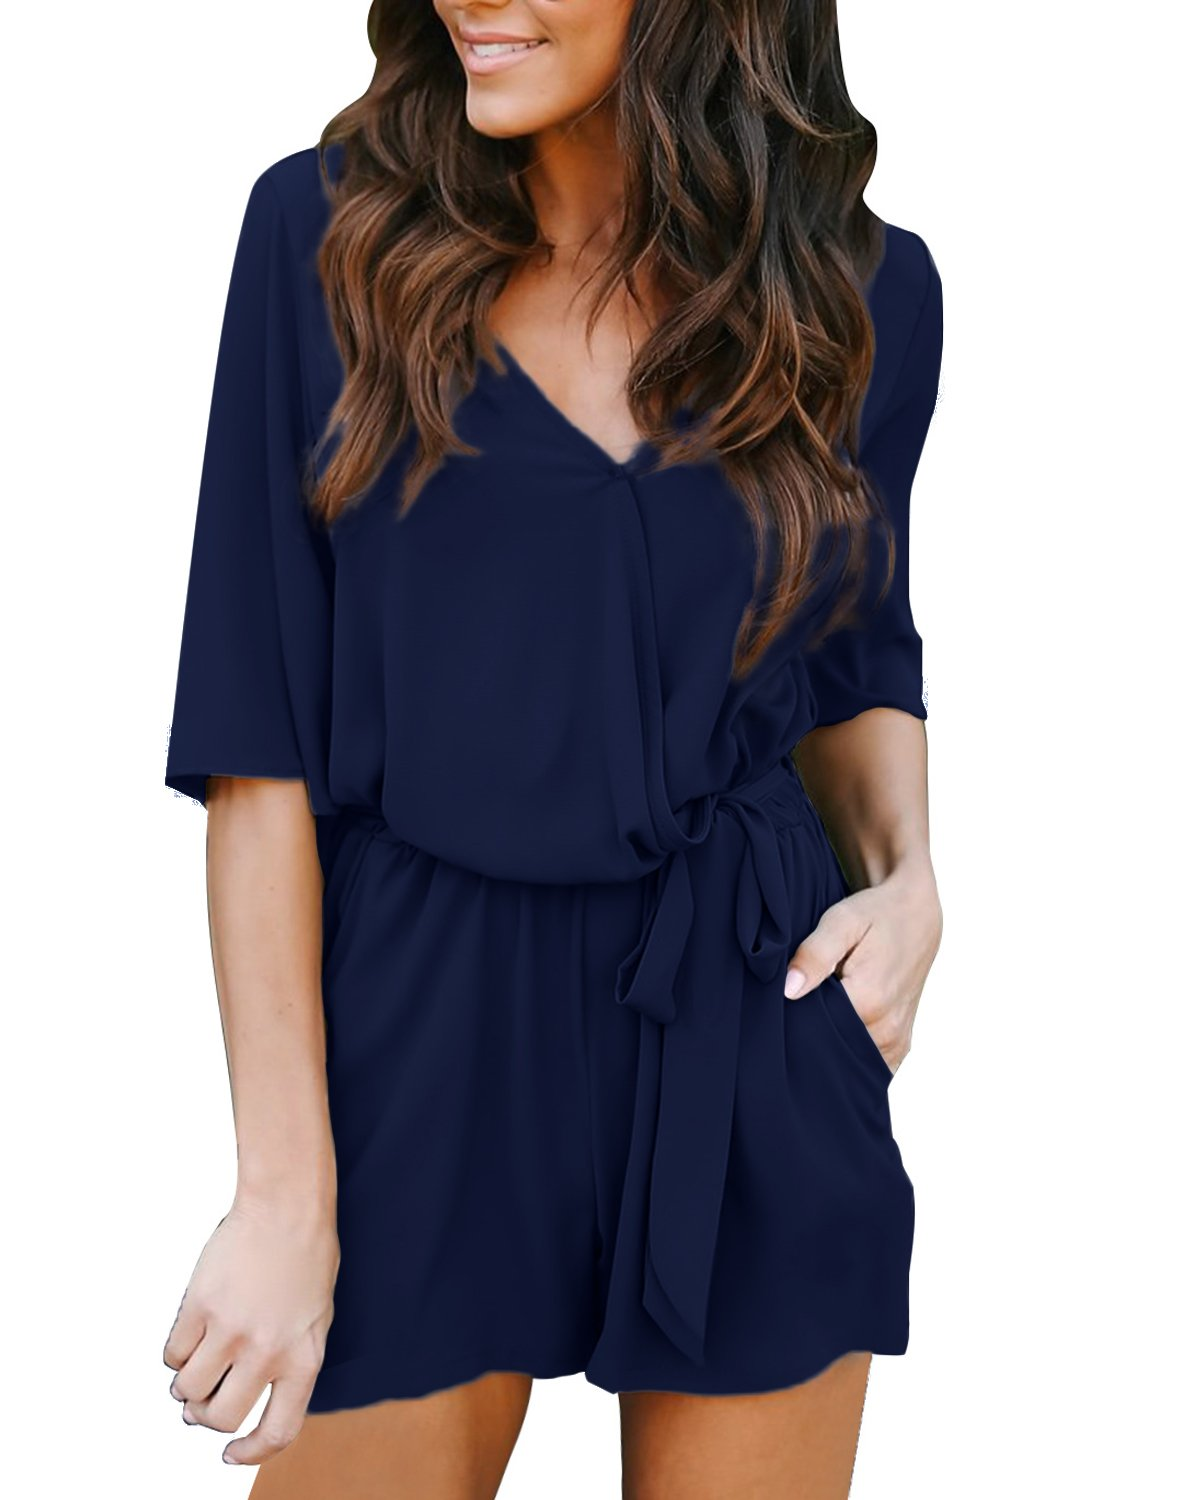 Auxo Women Short Sleeve Romper Summer V Neck Cute Playsuit One Piece Jumpsuit Jumper E-Navy 2XL